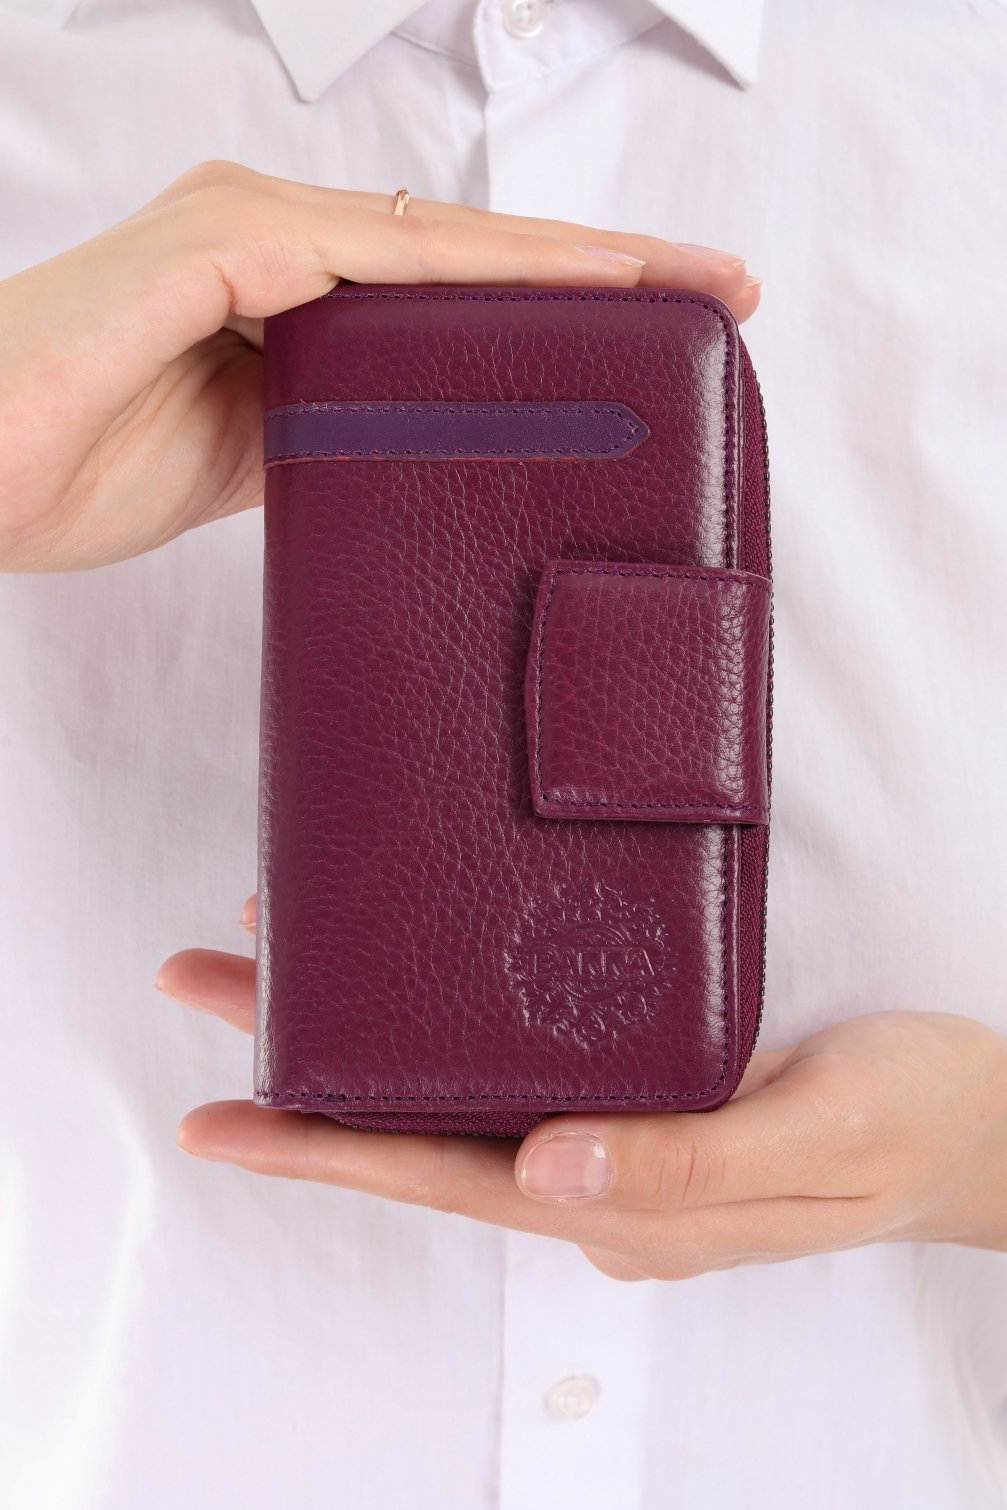 471 - Leather wallet - Grape